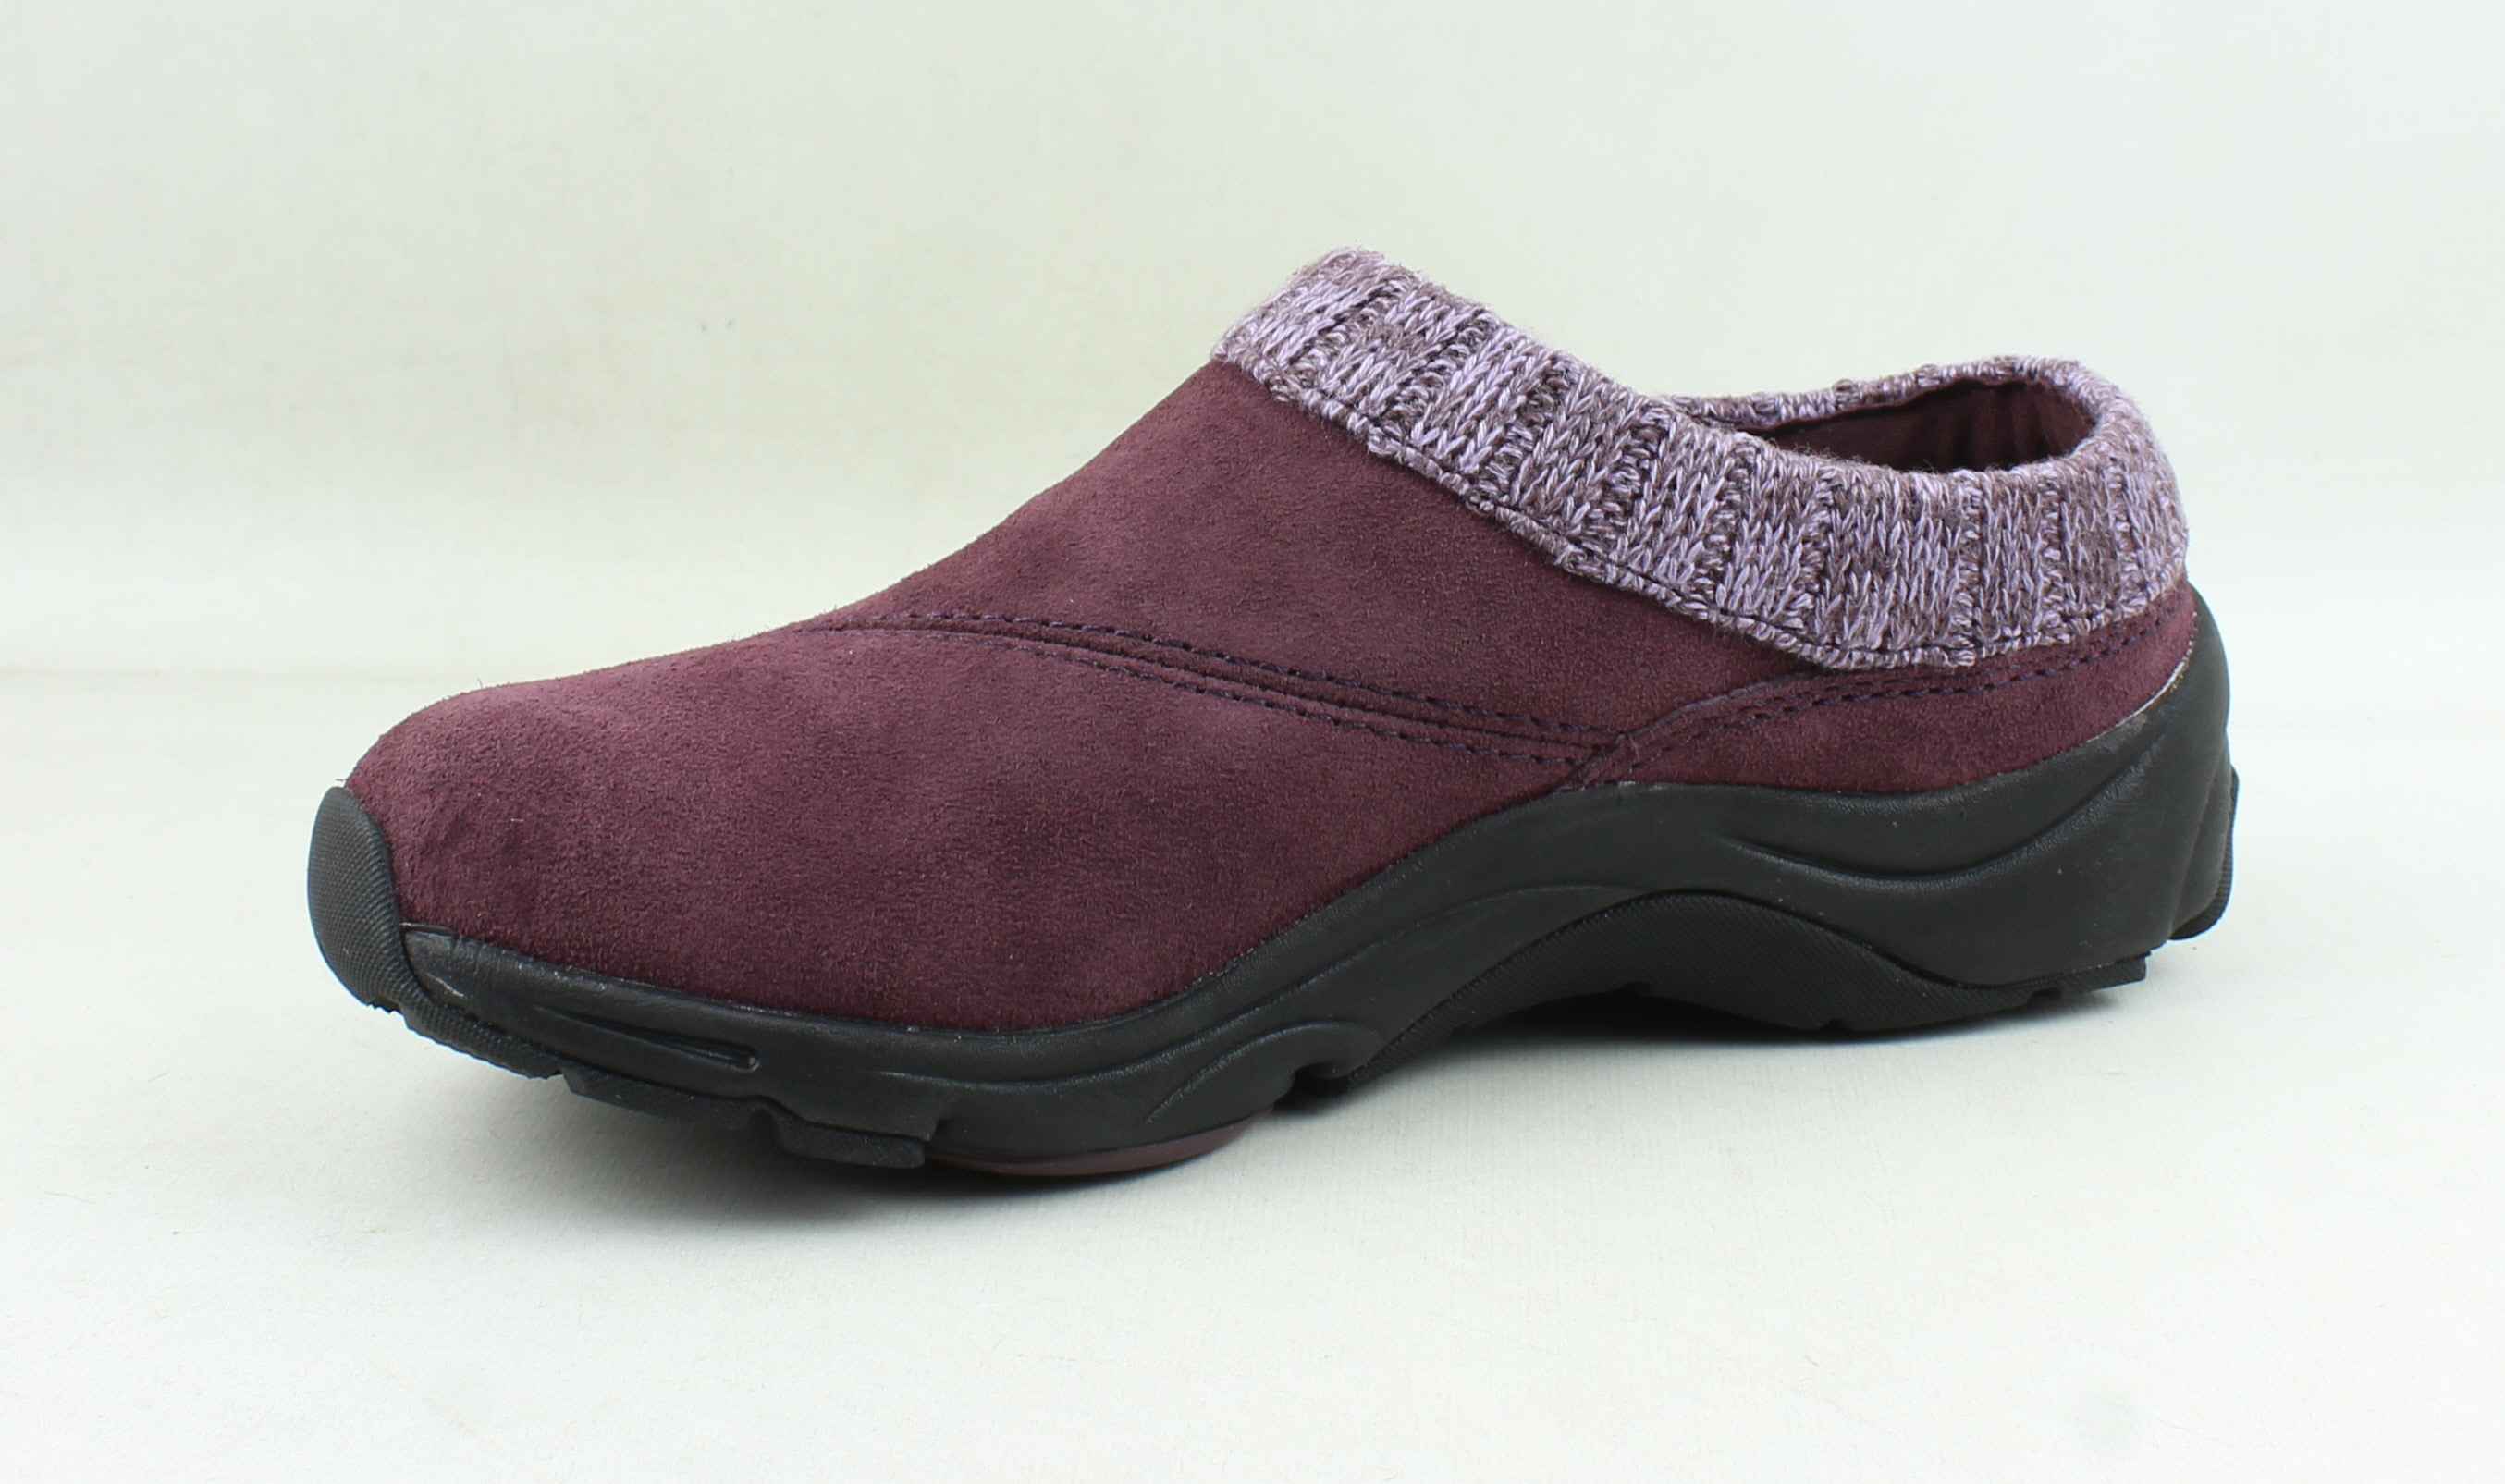 Vionic-Womens-Action-Arbor-Suede-Leather-Casual-Comfort-Clogs thumbnail 18